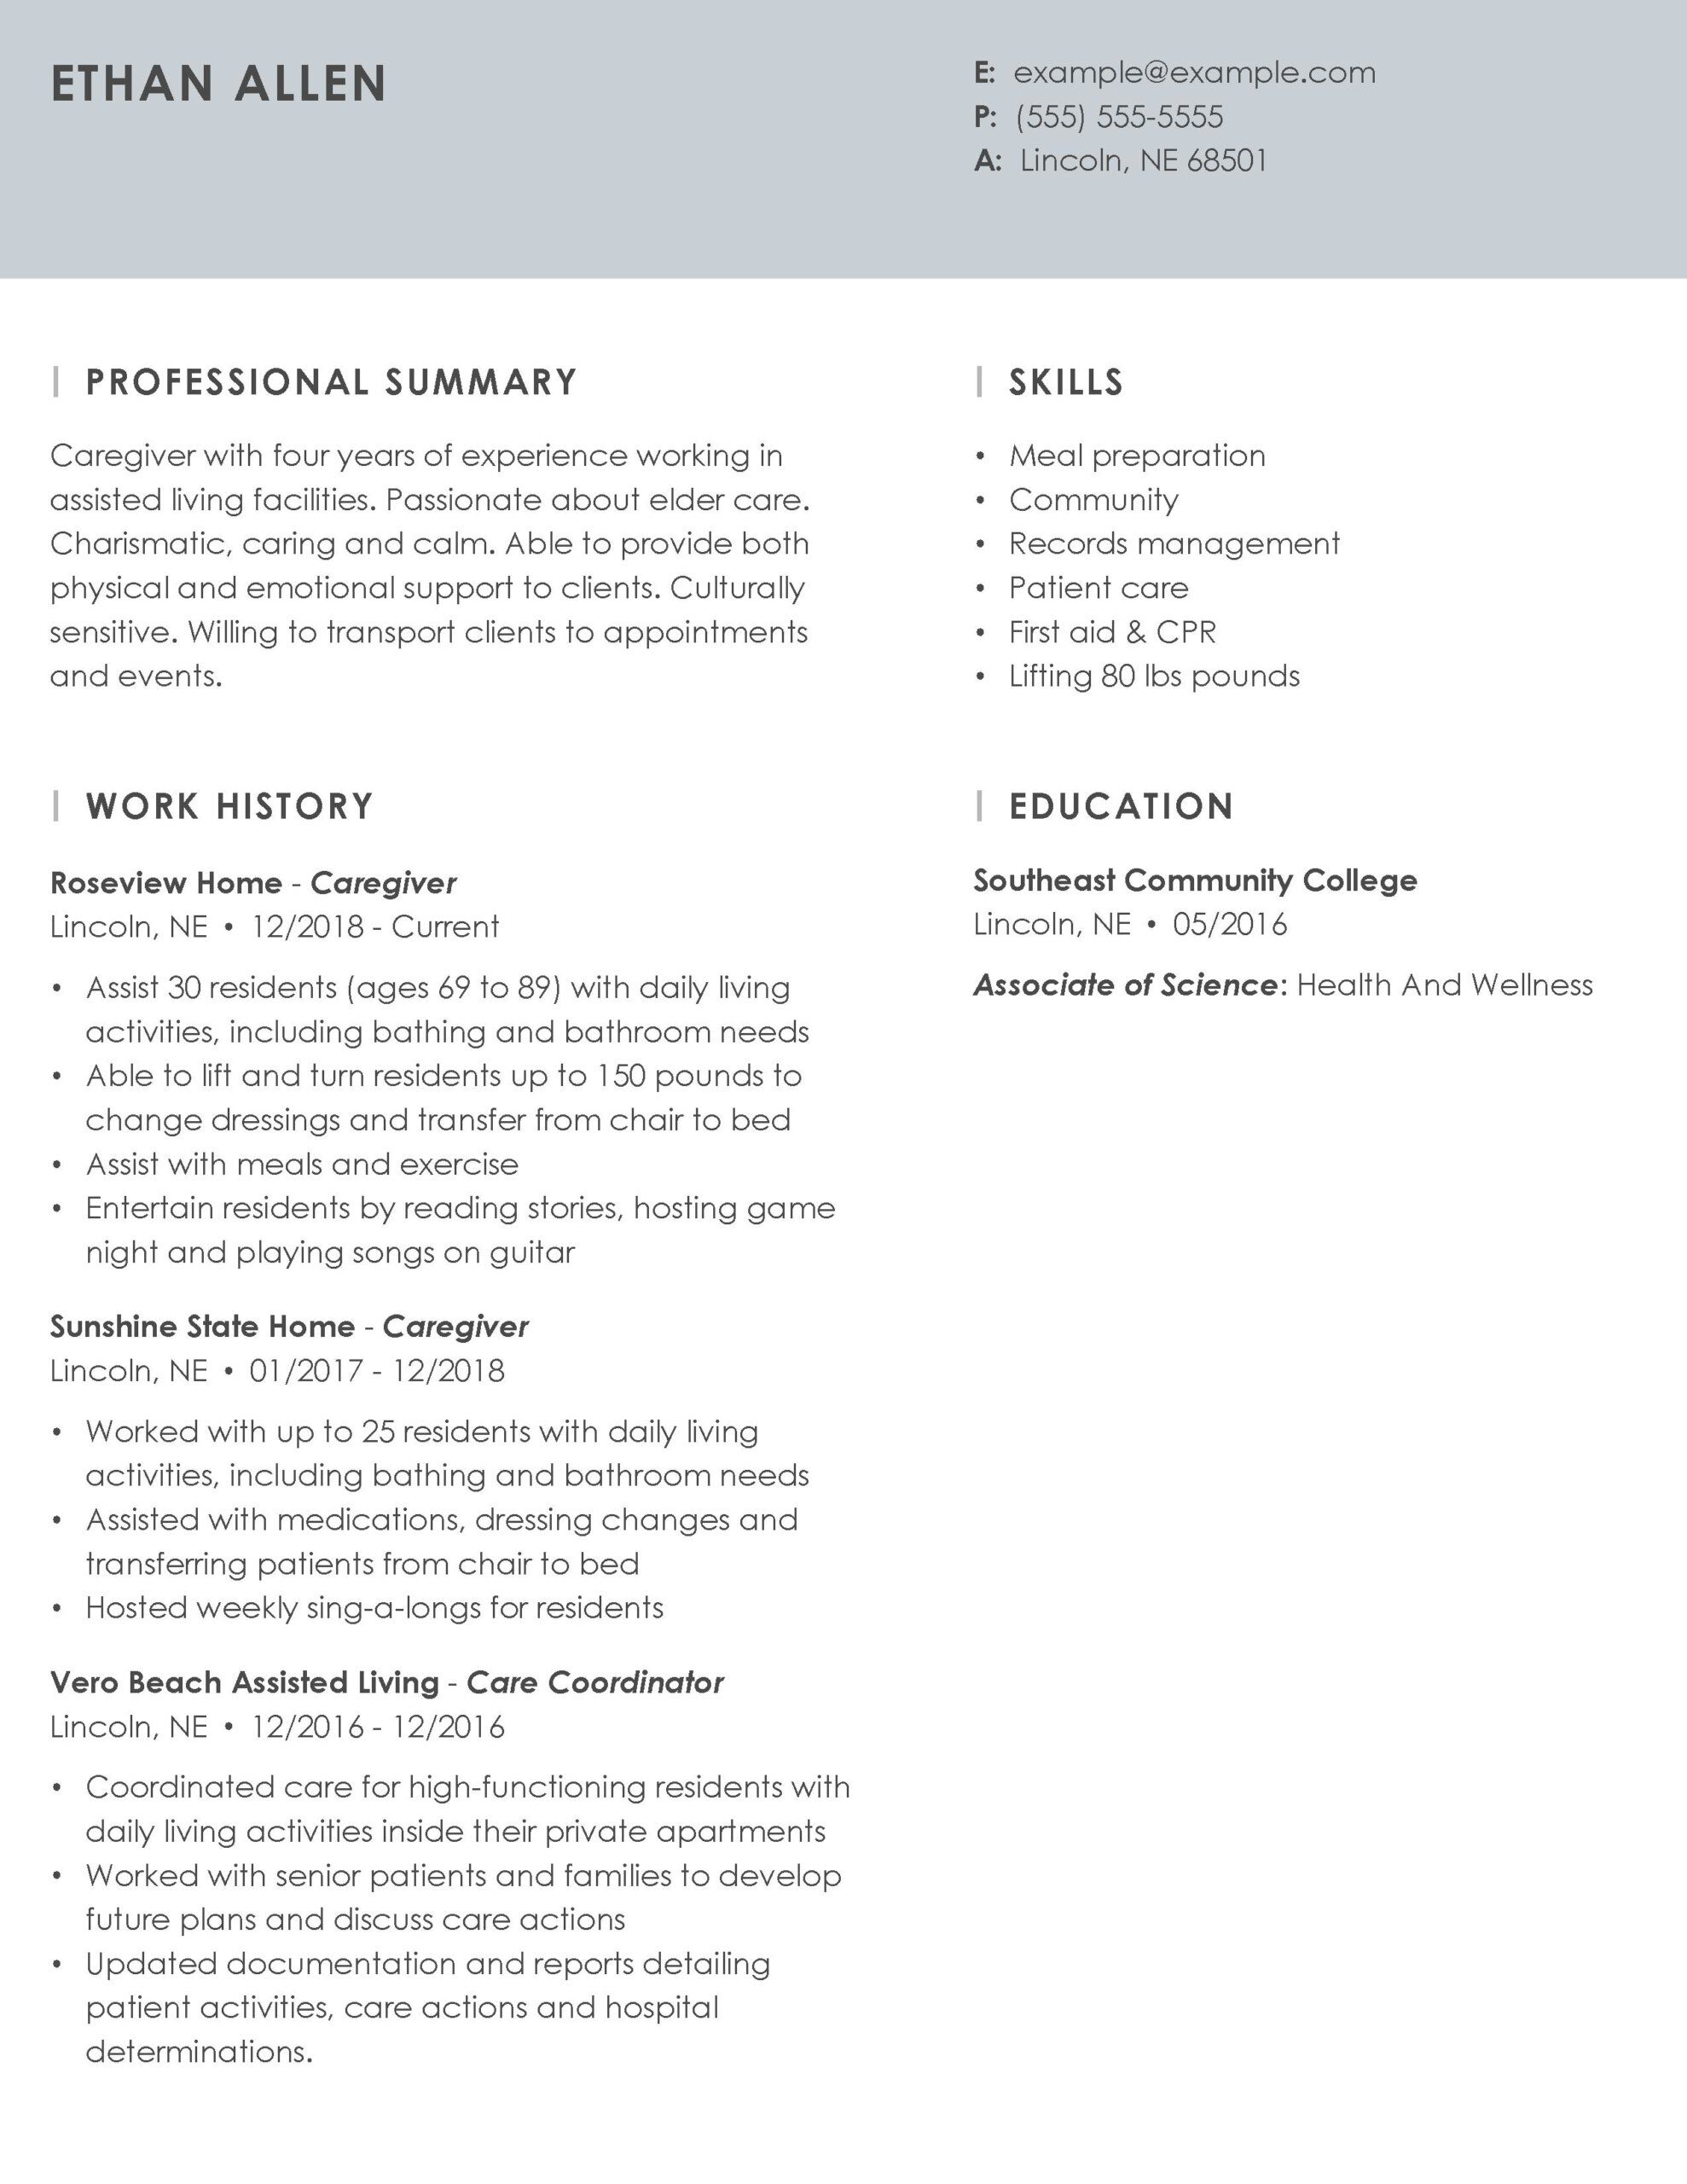 professional caregiver resume example tips myperfectresume for home essence combod Resume Resume For Home Caregiver